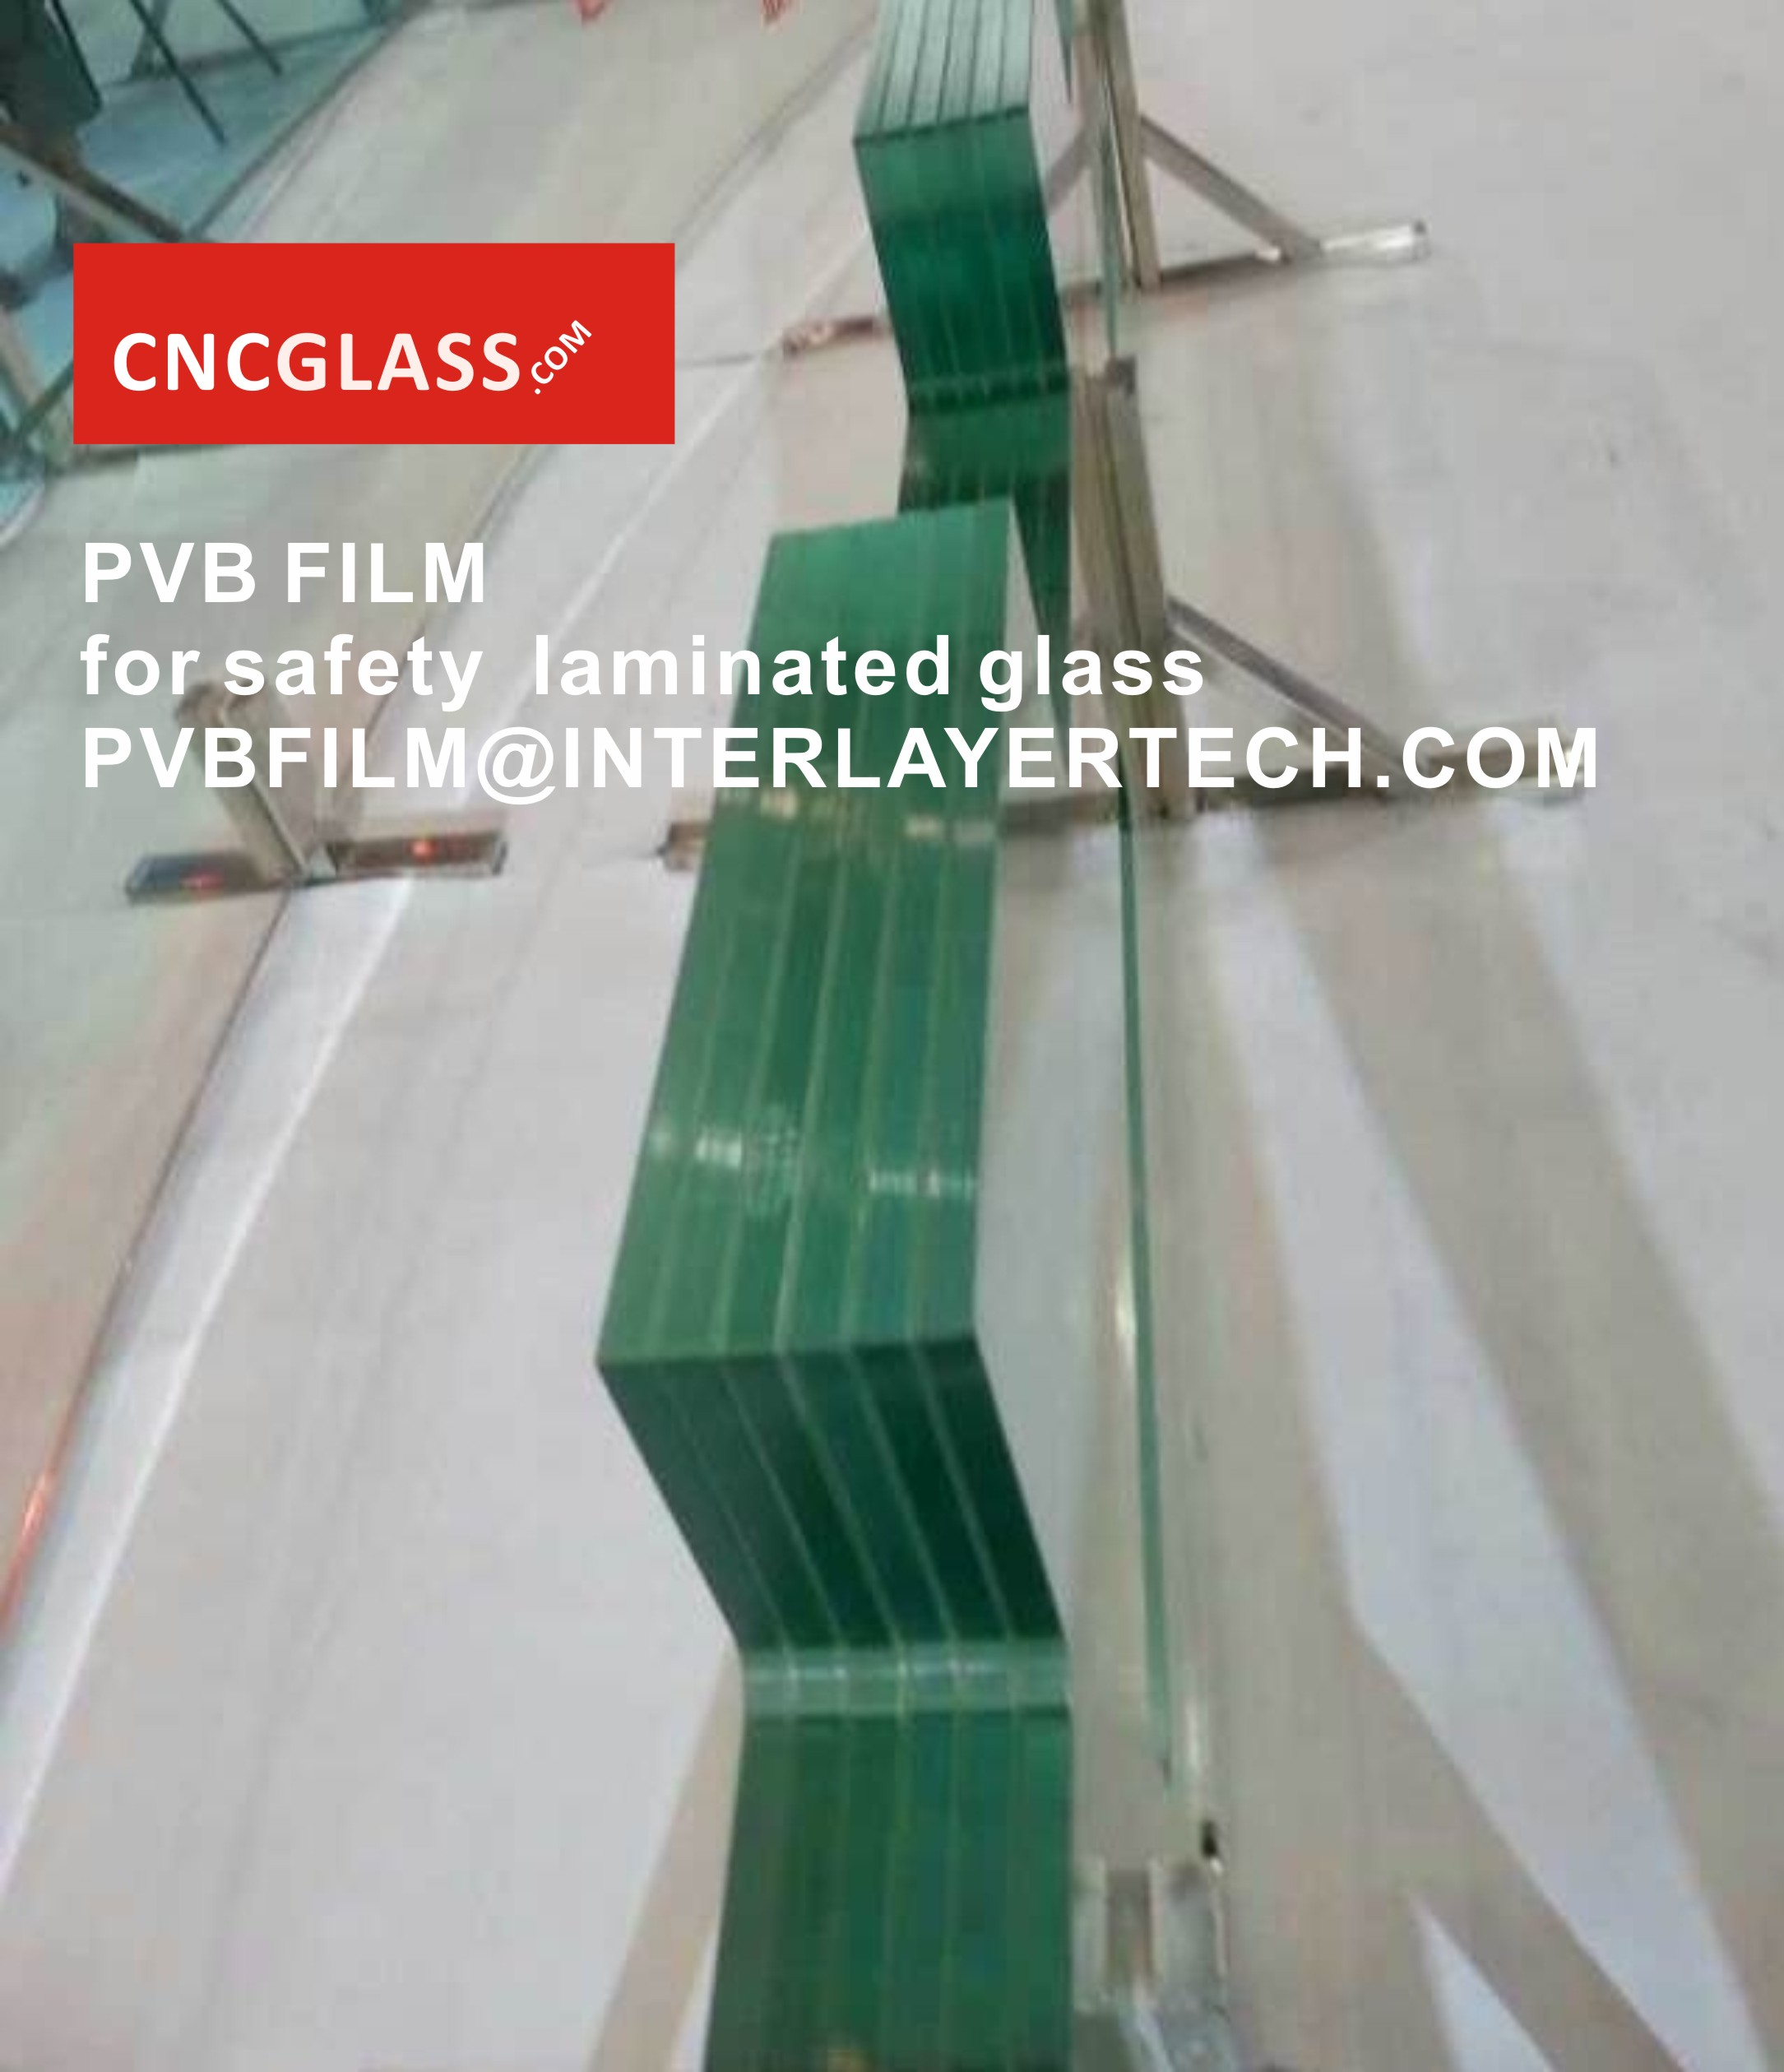 01 PVB FILM for safety laminated glass (7)